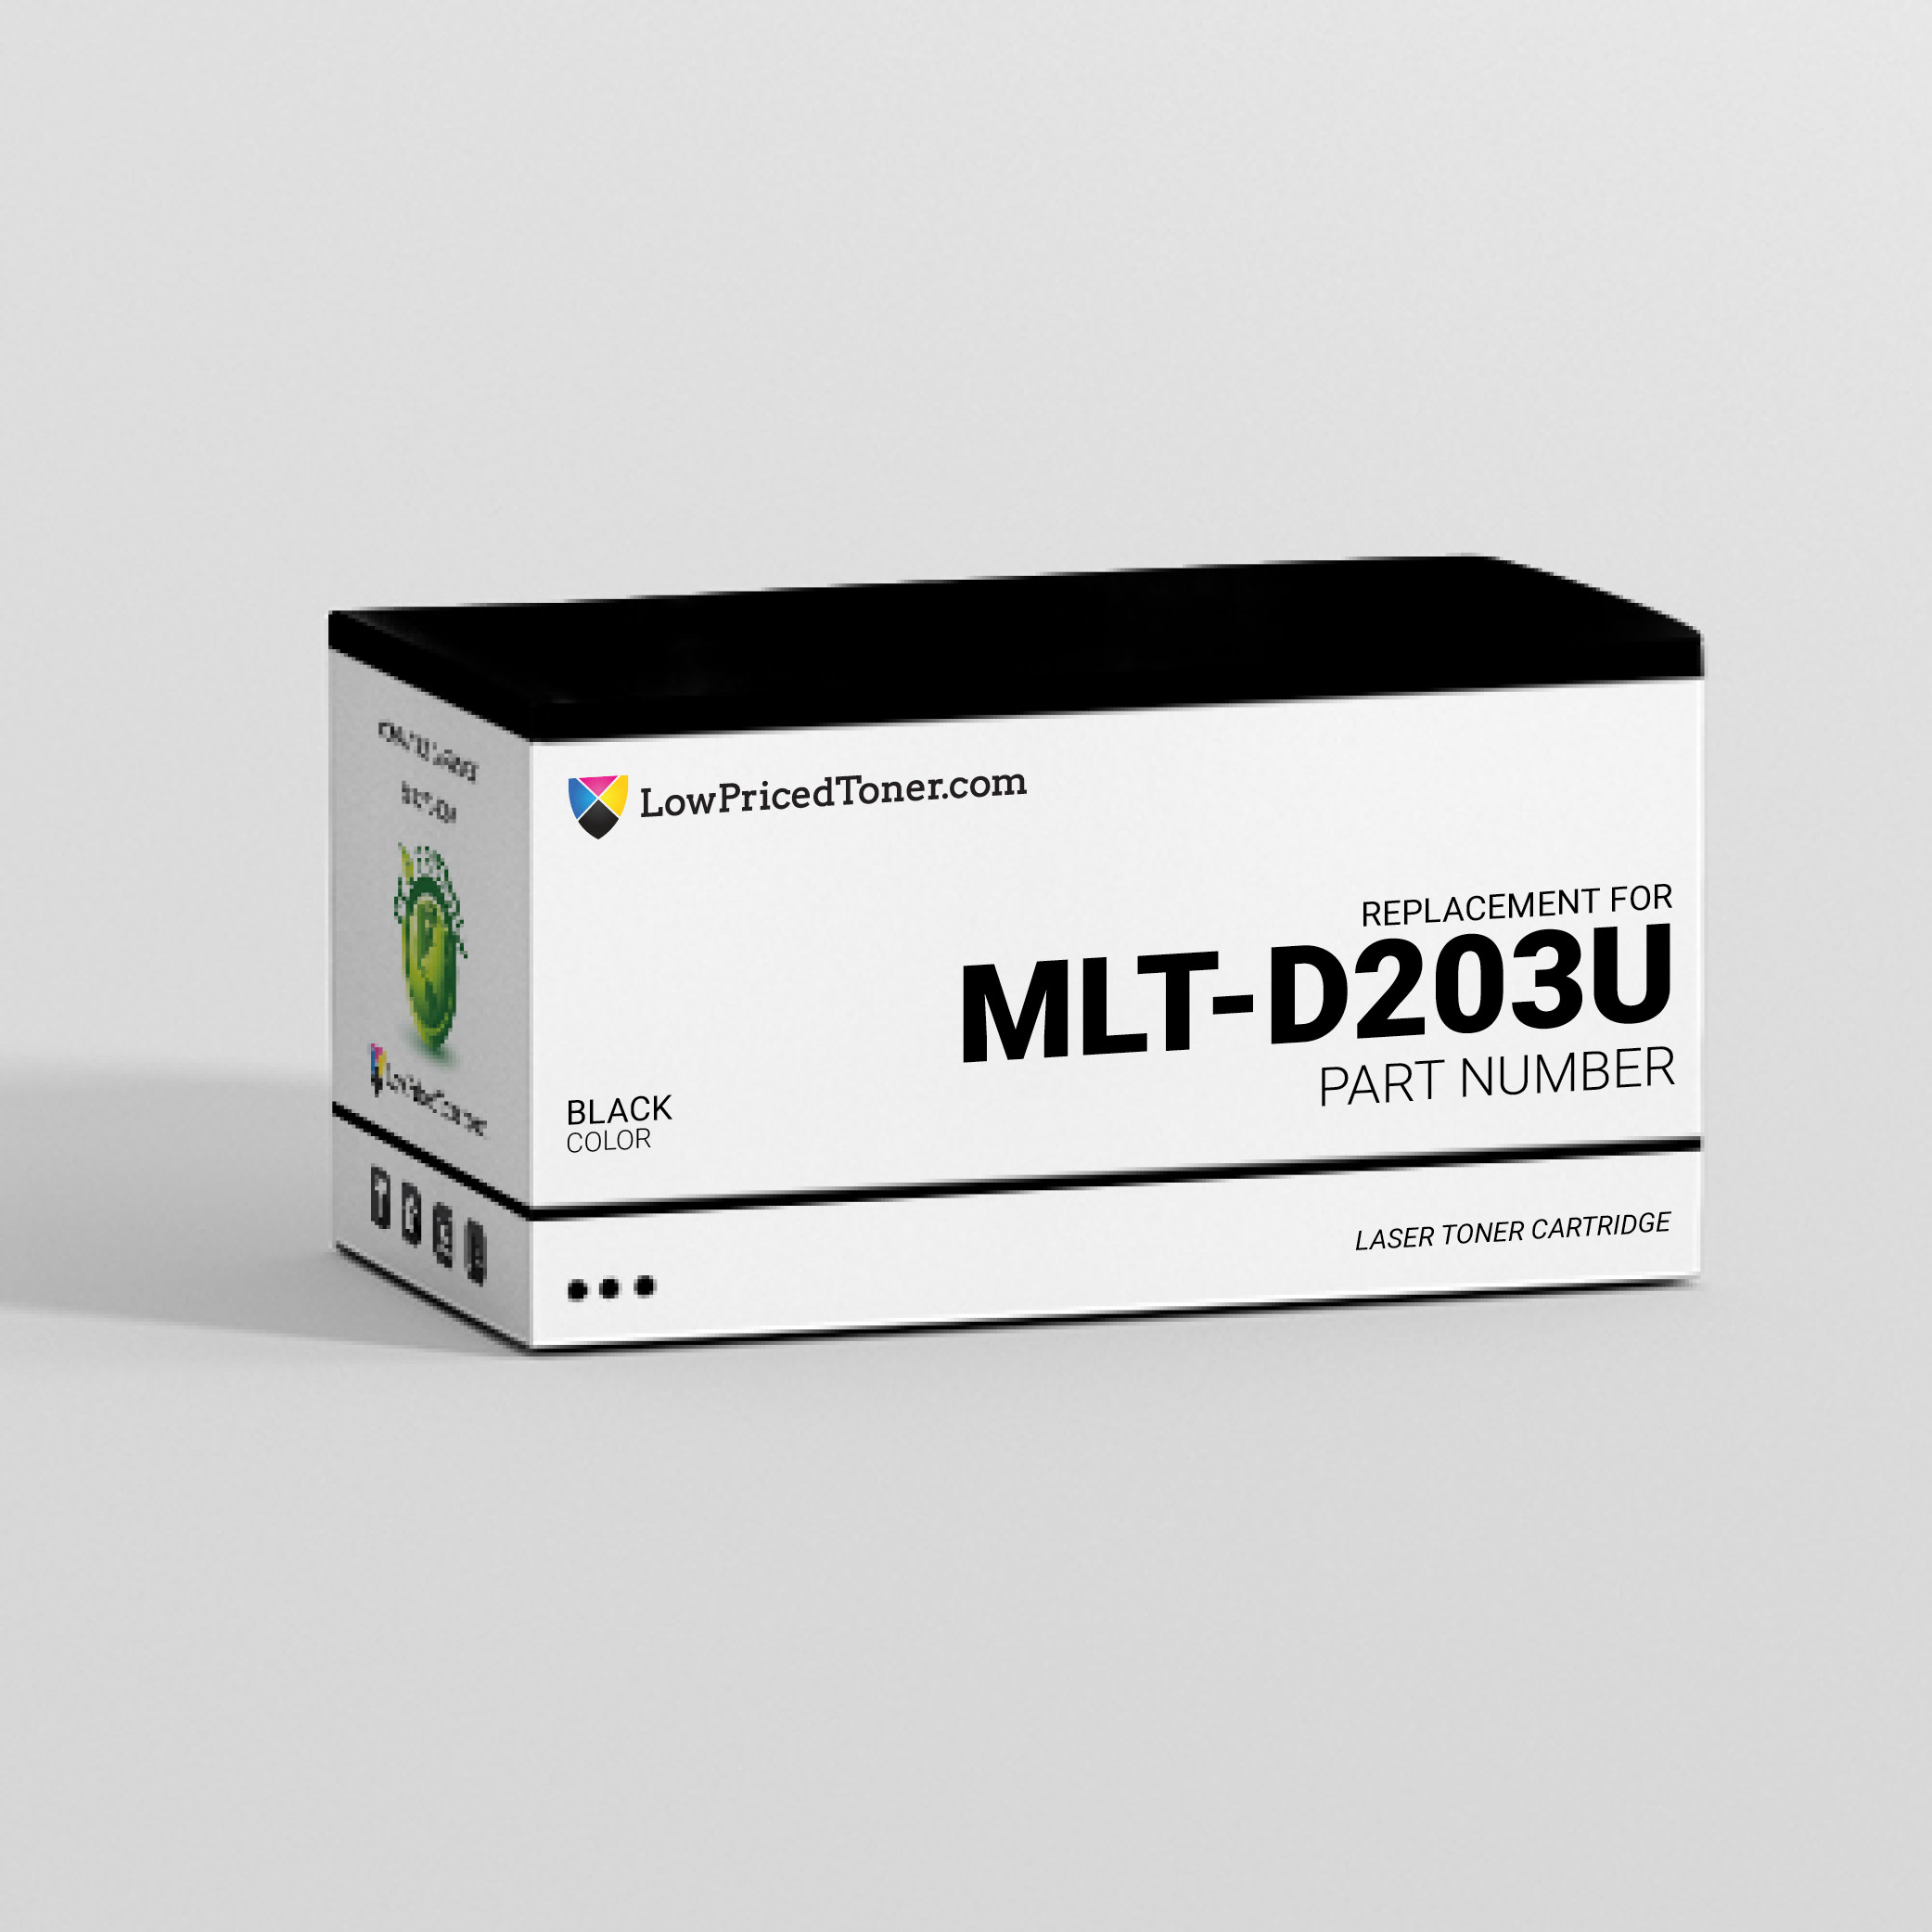 Samsung MLT-D203U Compatible Black Laser Toner Cartridge